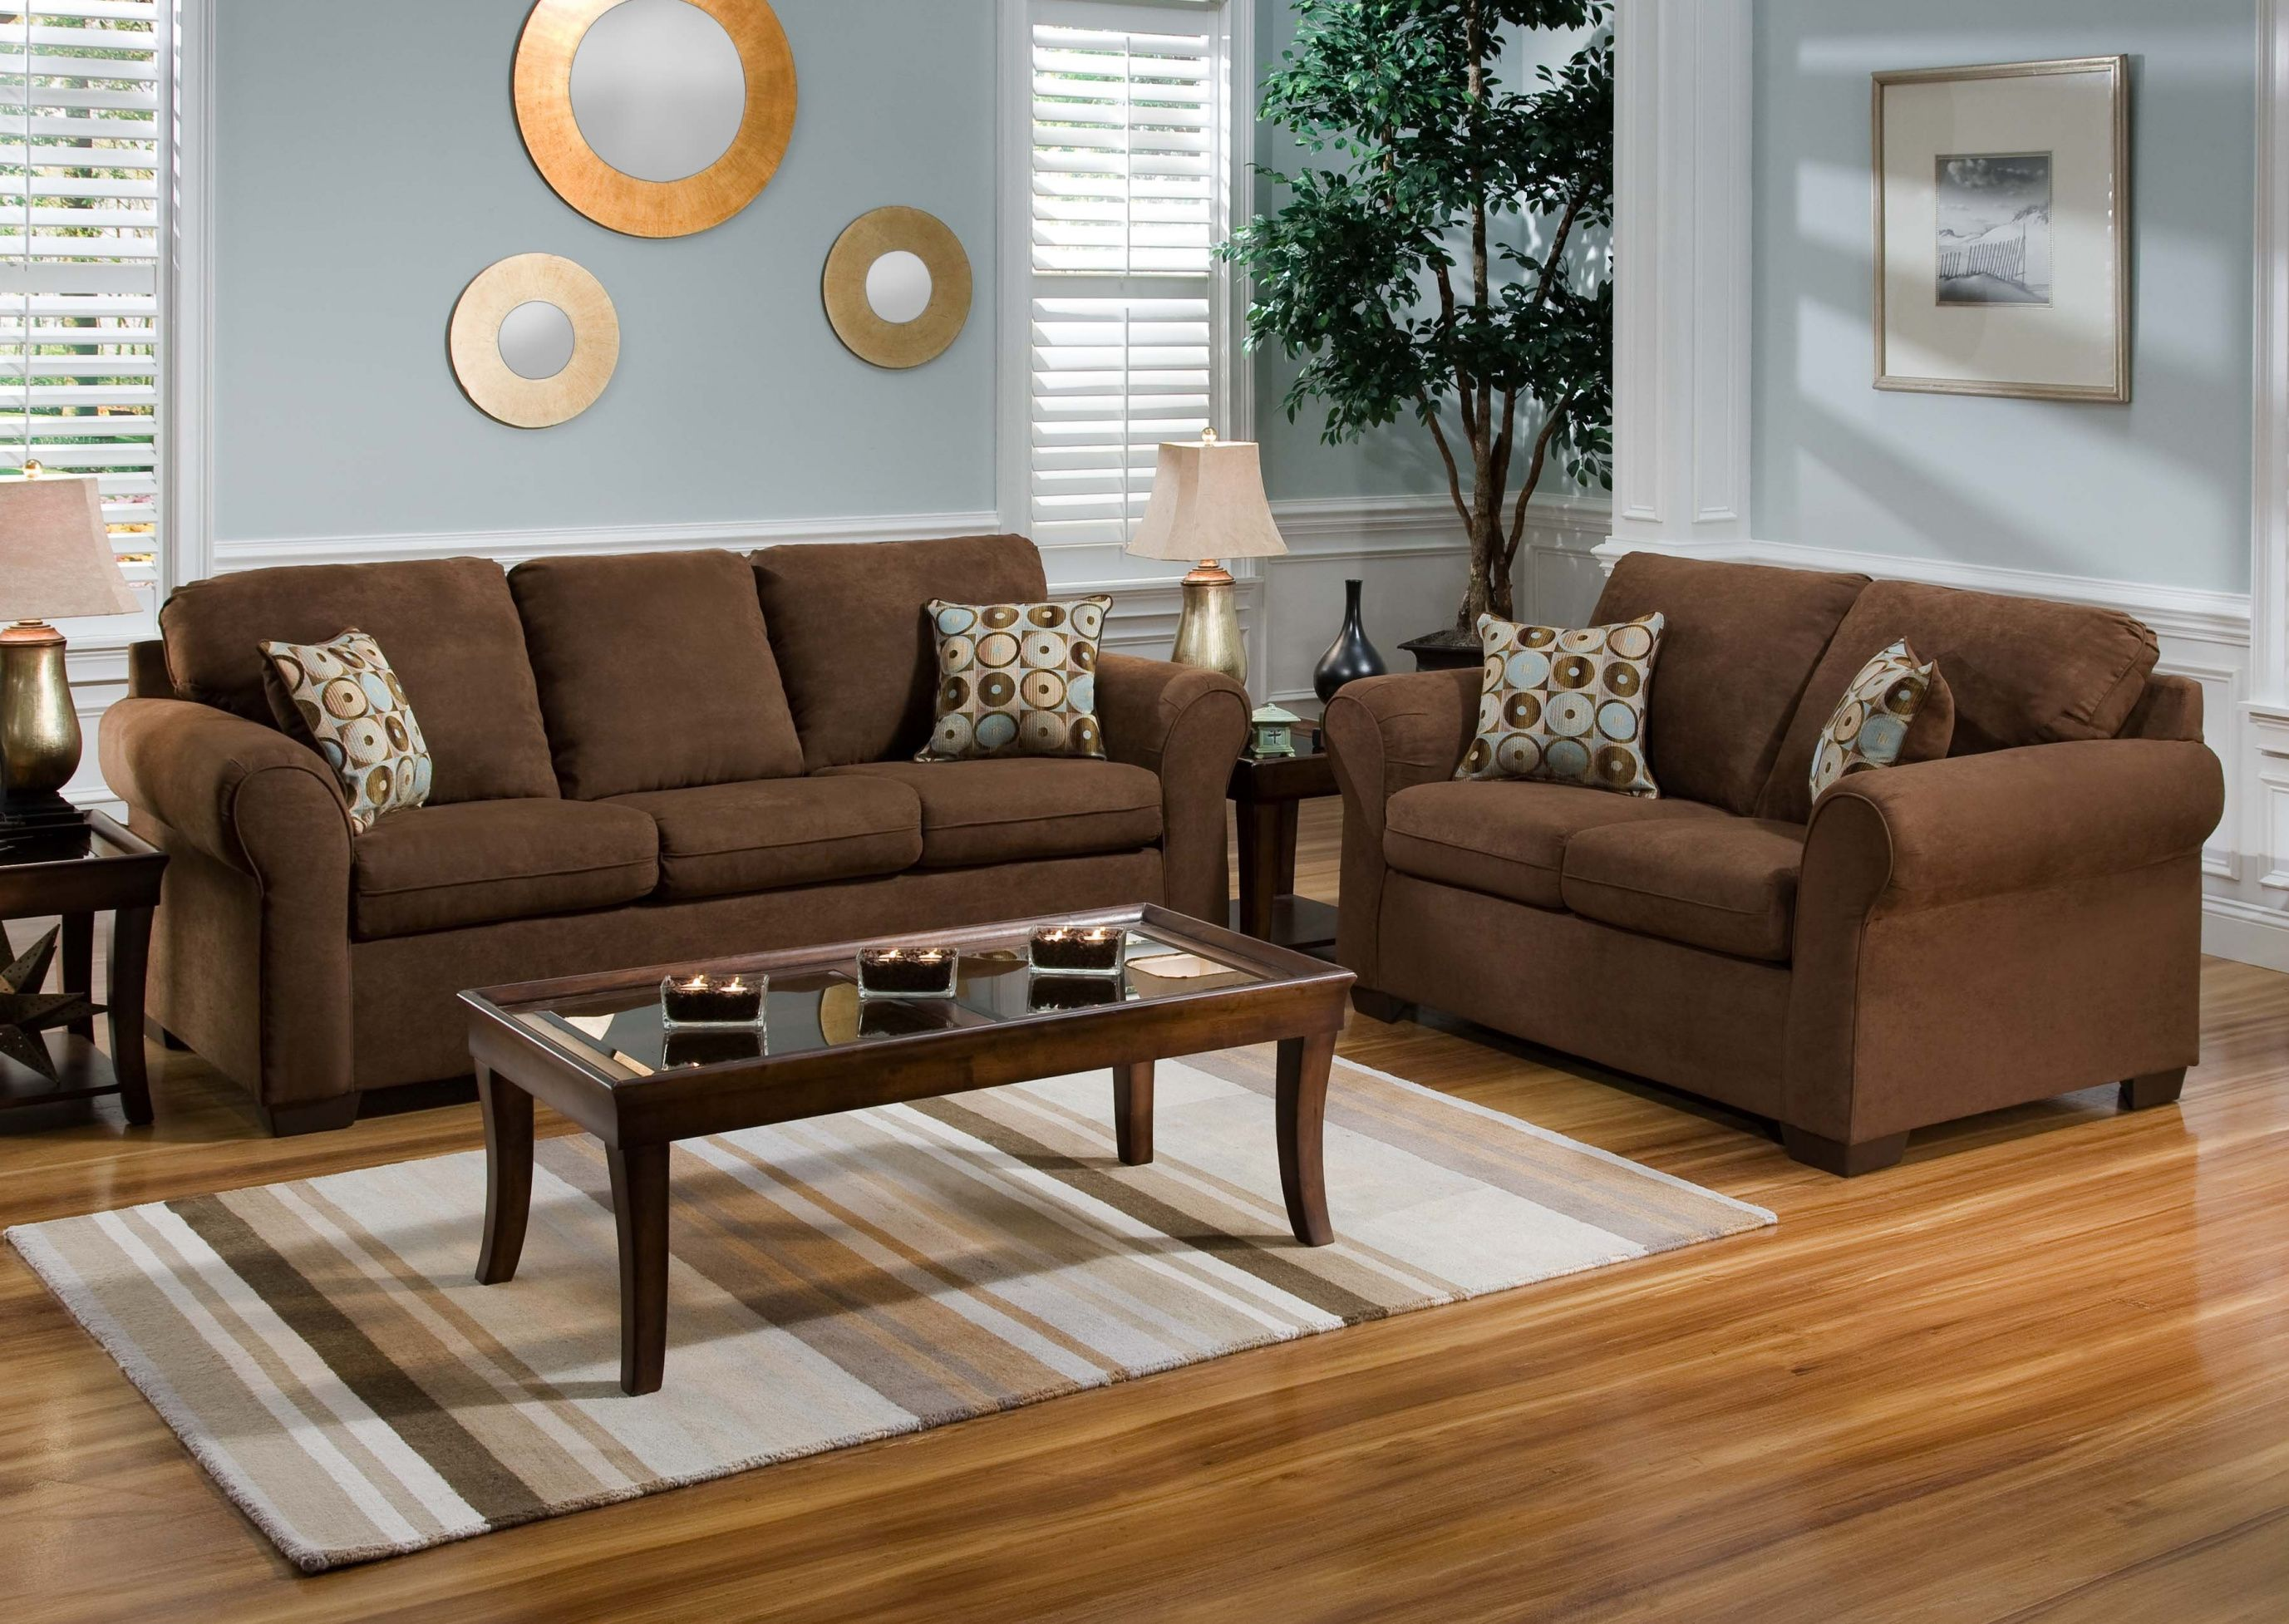 What Paint Color Goes With Brown Furniture Best Office Furniture Check More At H Brown Living Room Decor Brown Sofa Living Room Living Room Decor Brown Couch